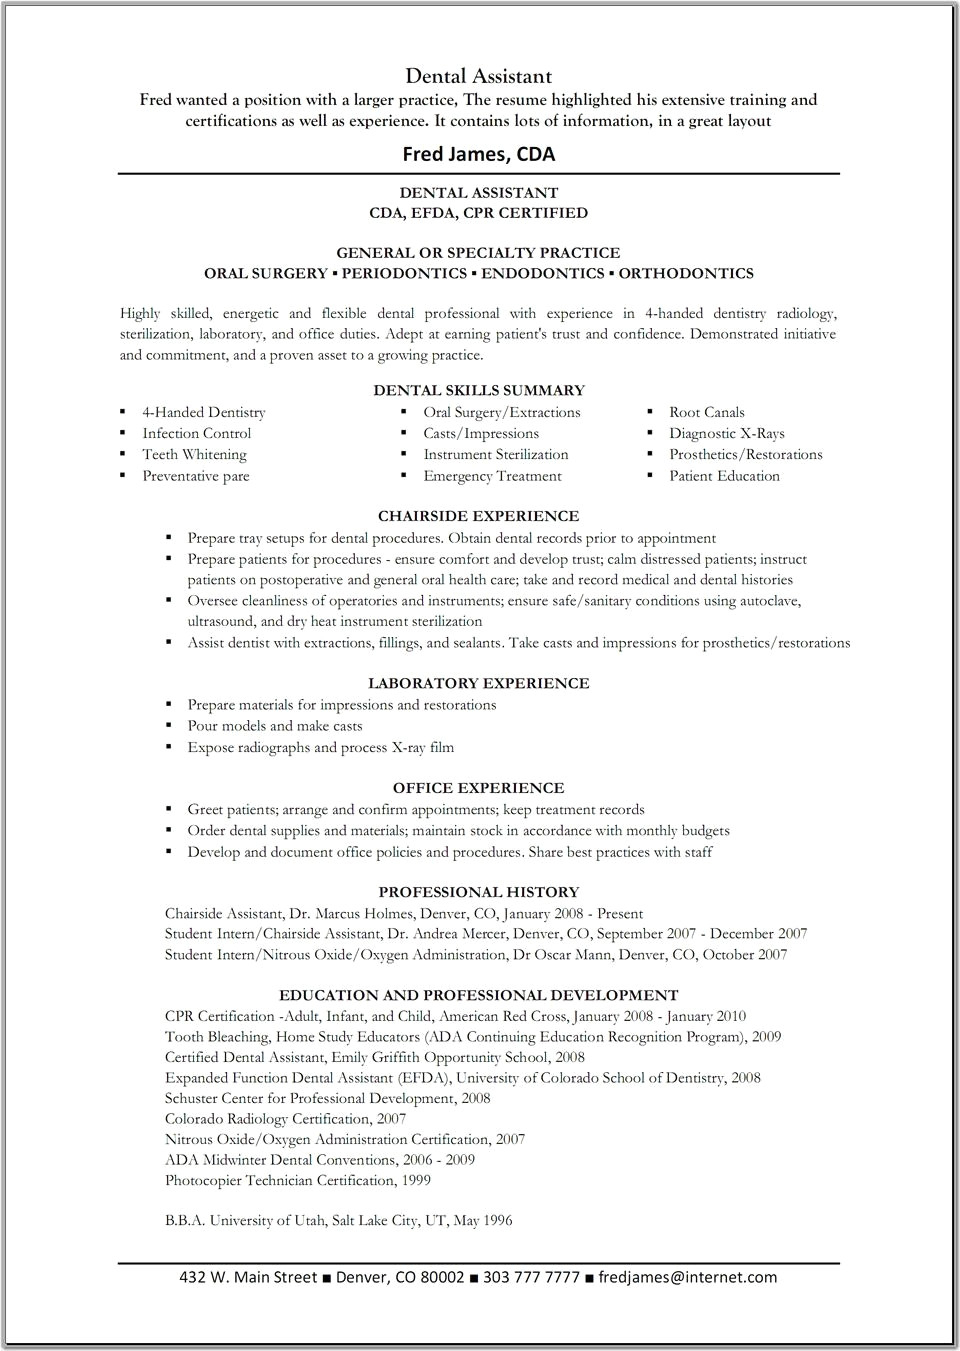 Dental assistant Resume - 42 Awesome Dental assistant Resume Templates